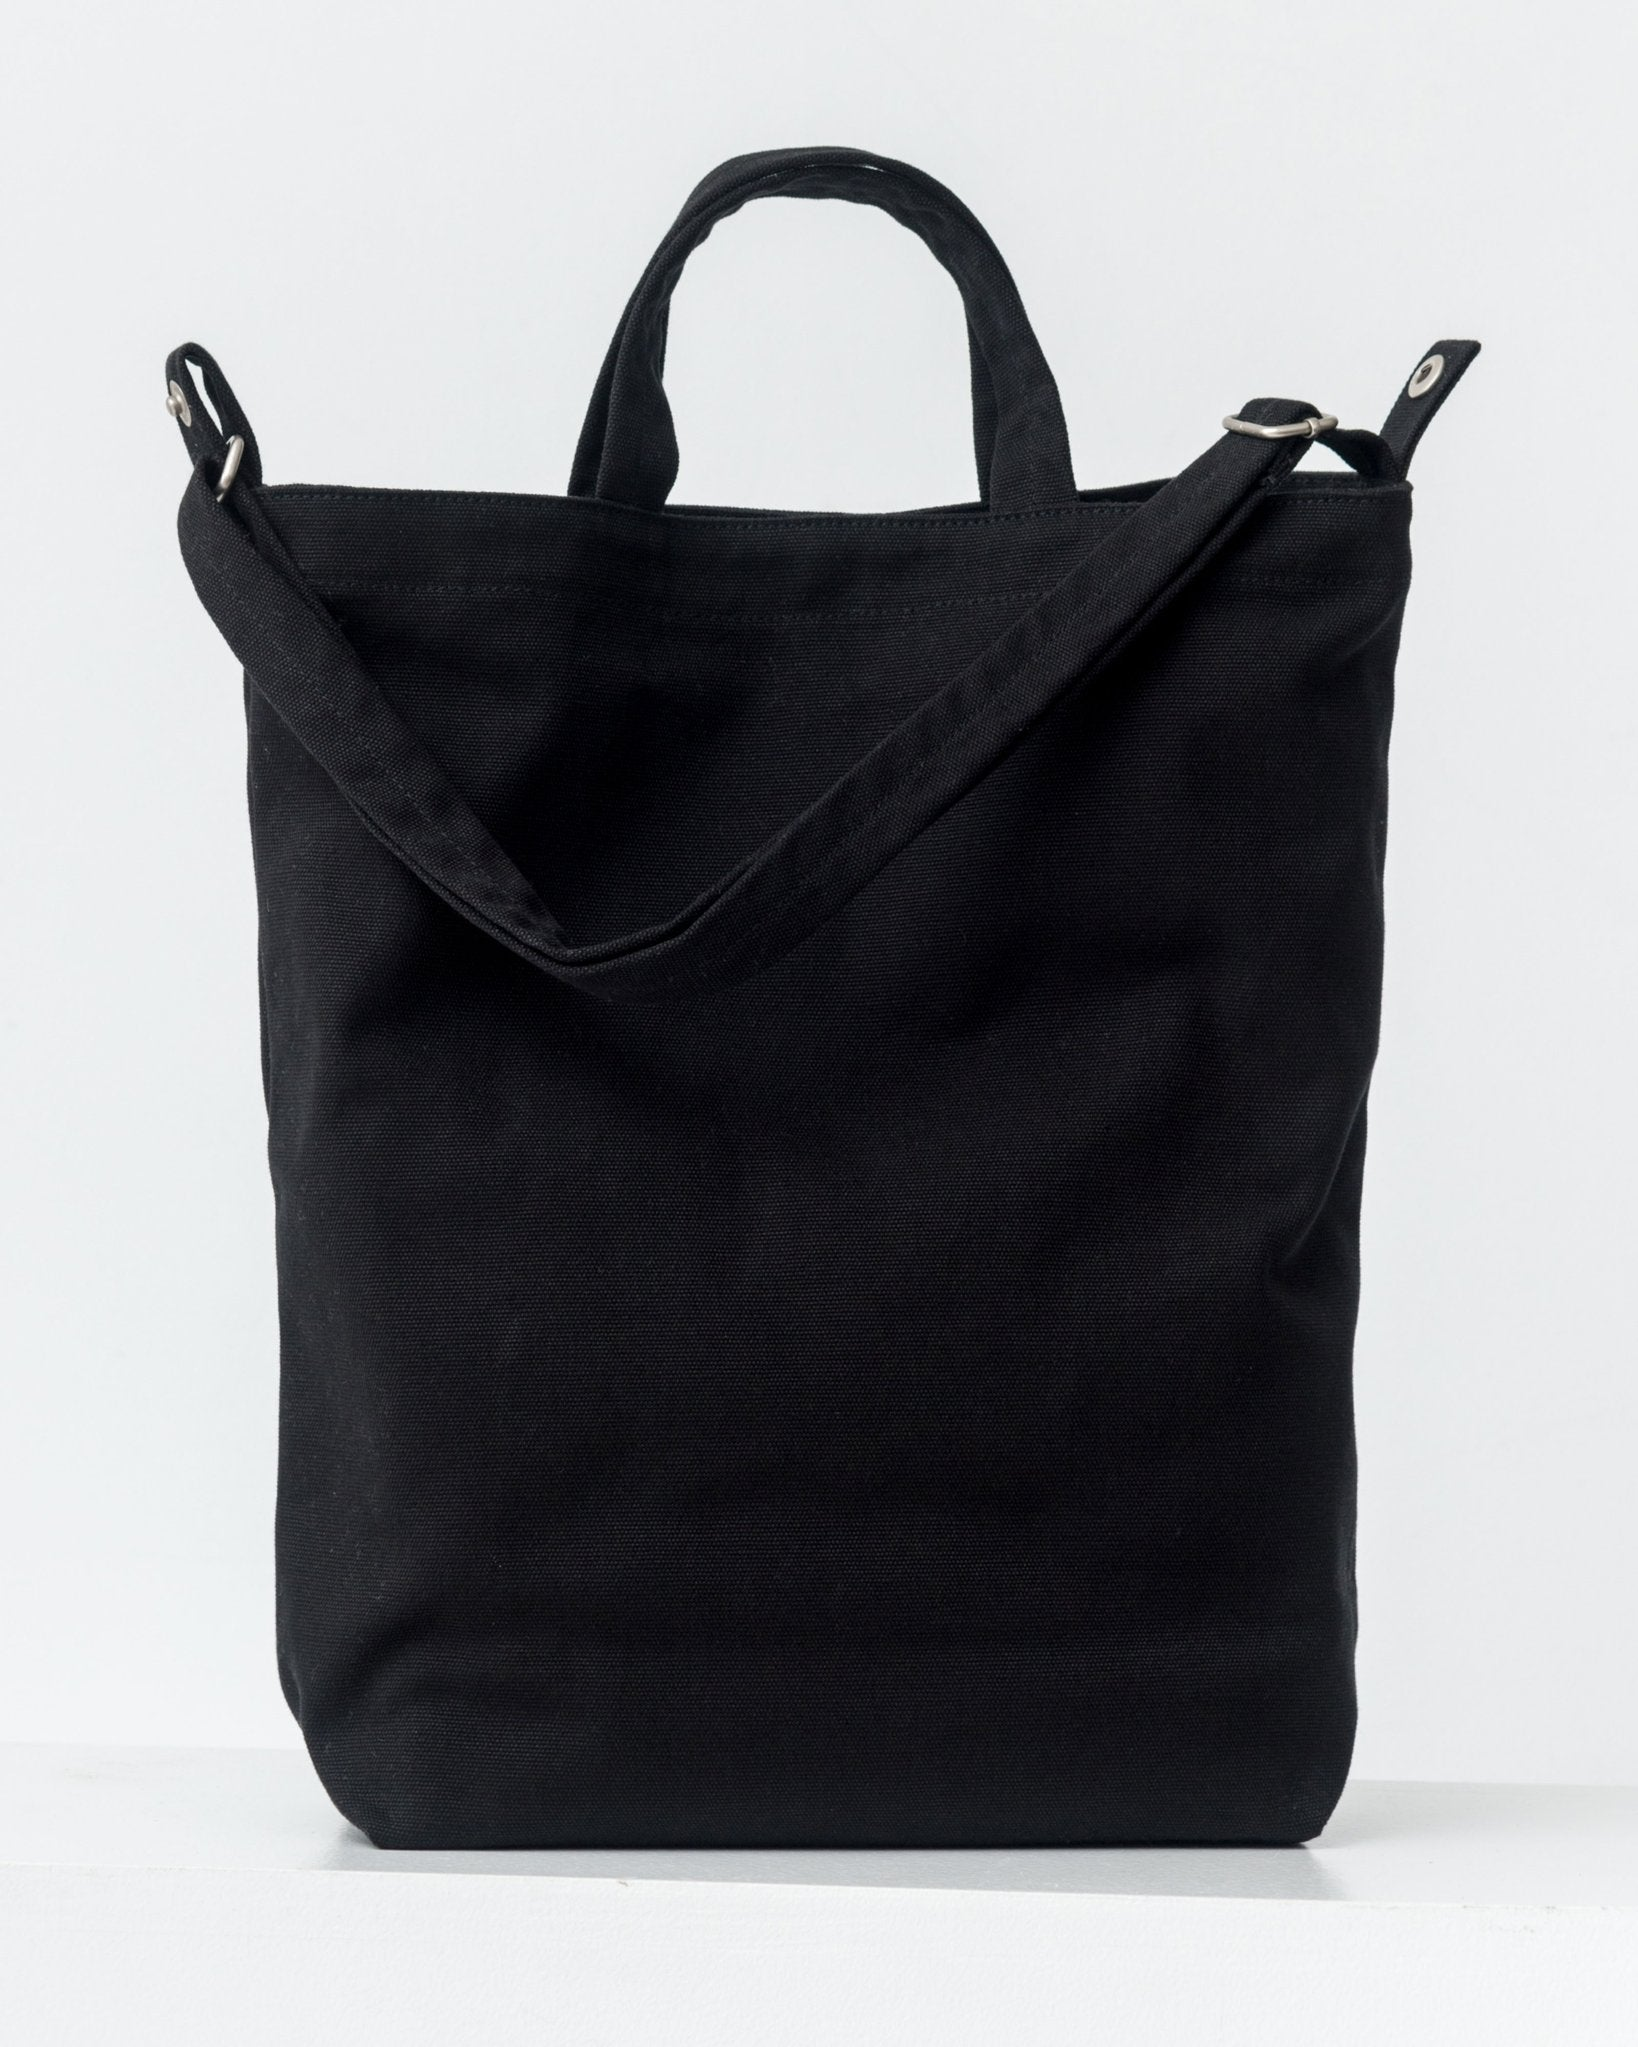 Duck Bag in Black